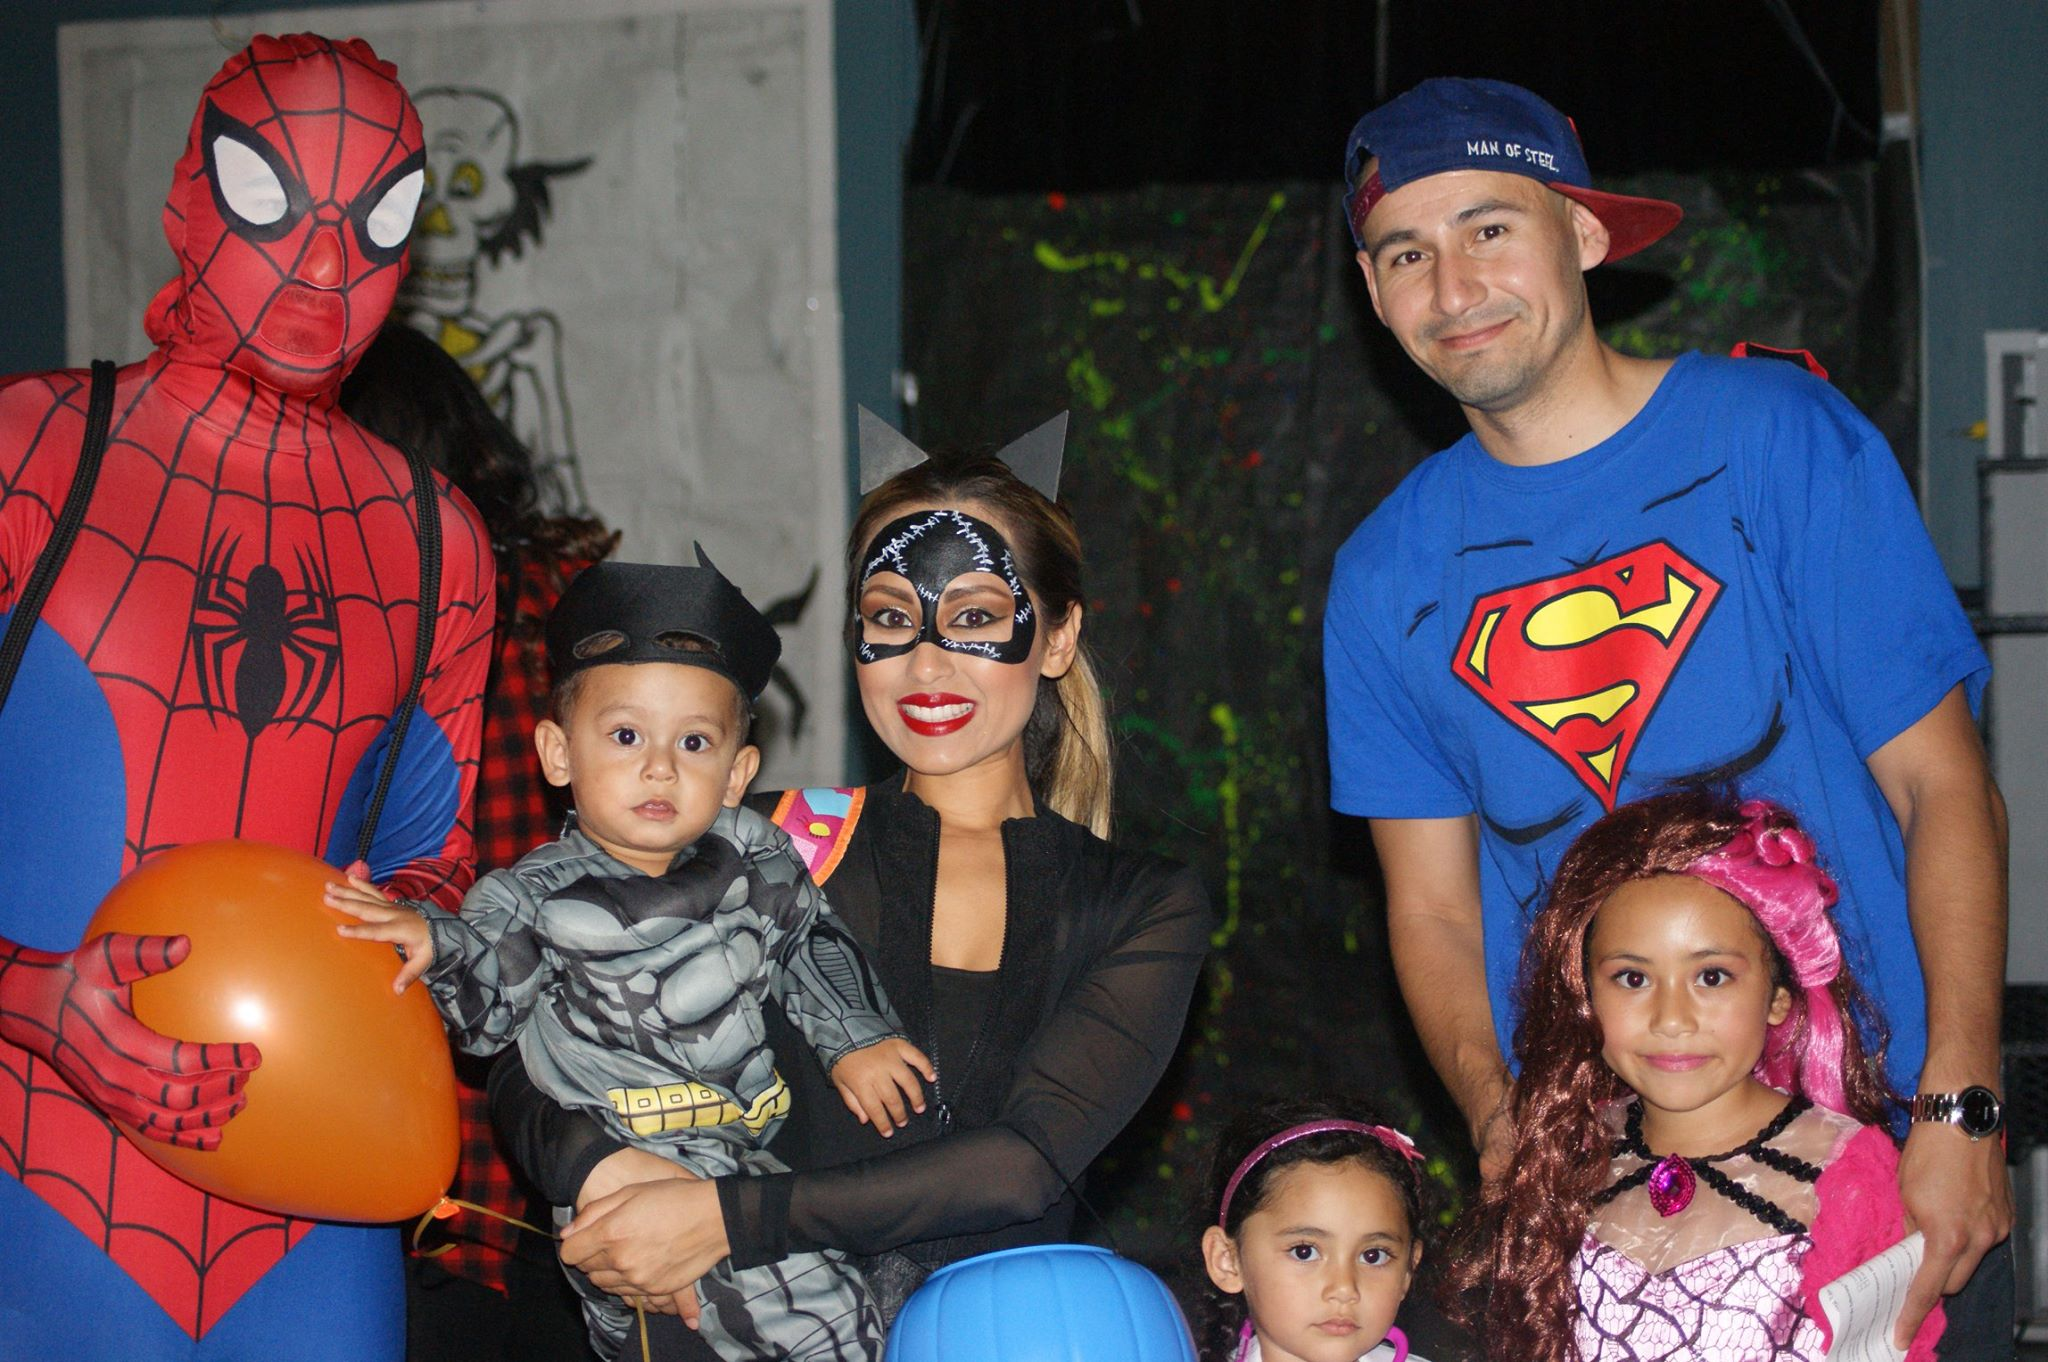 spring valley family friendly halloween festival